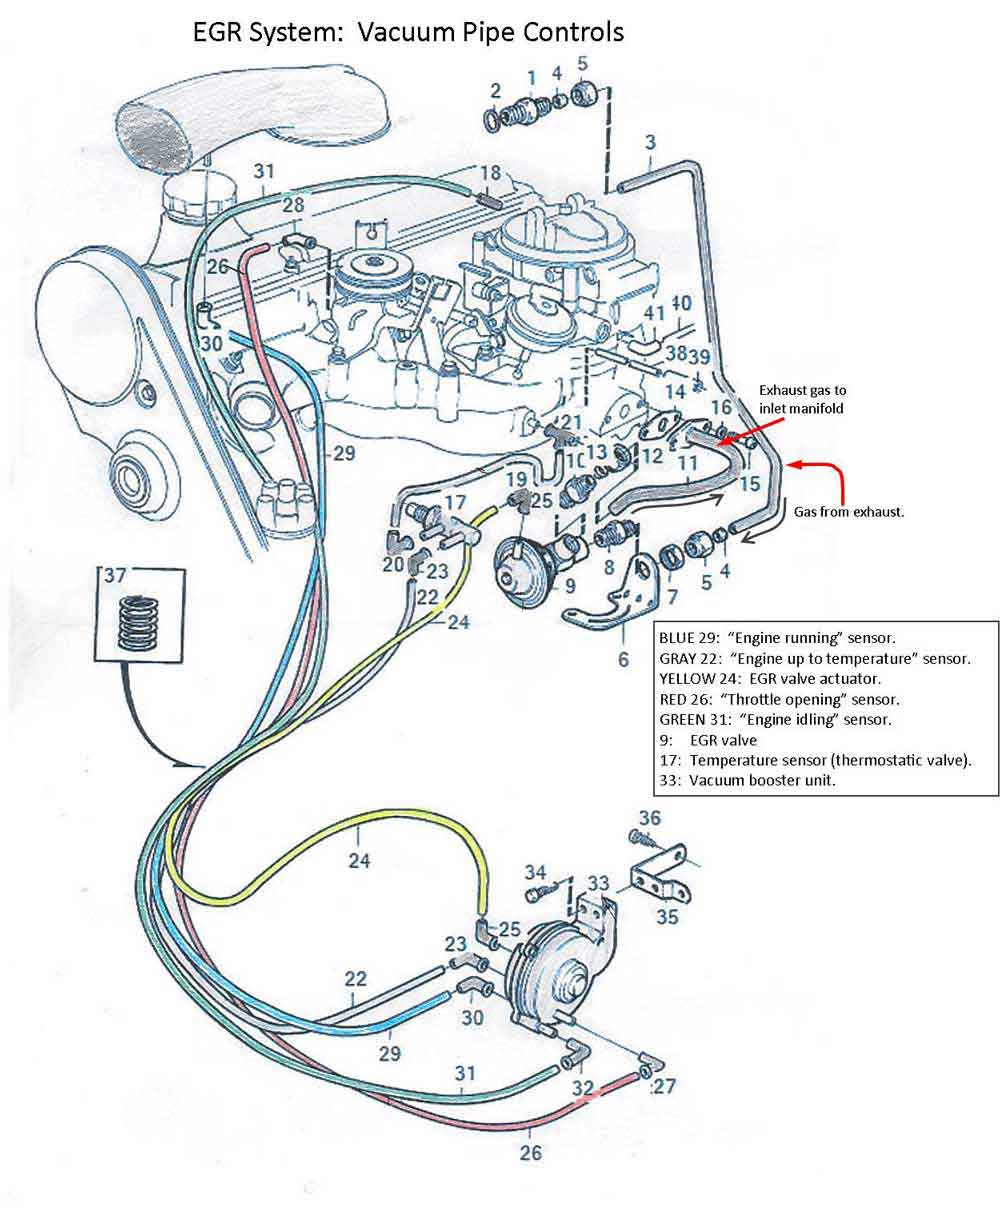 Volvo S70 Engine Diagram Free Wiring For You 240 Fuse Box 2000 S40 As Well V70 Rh 1 Jennifer Retzke De 2002